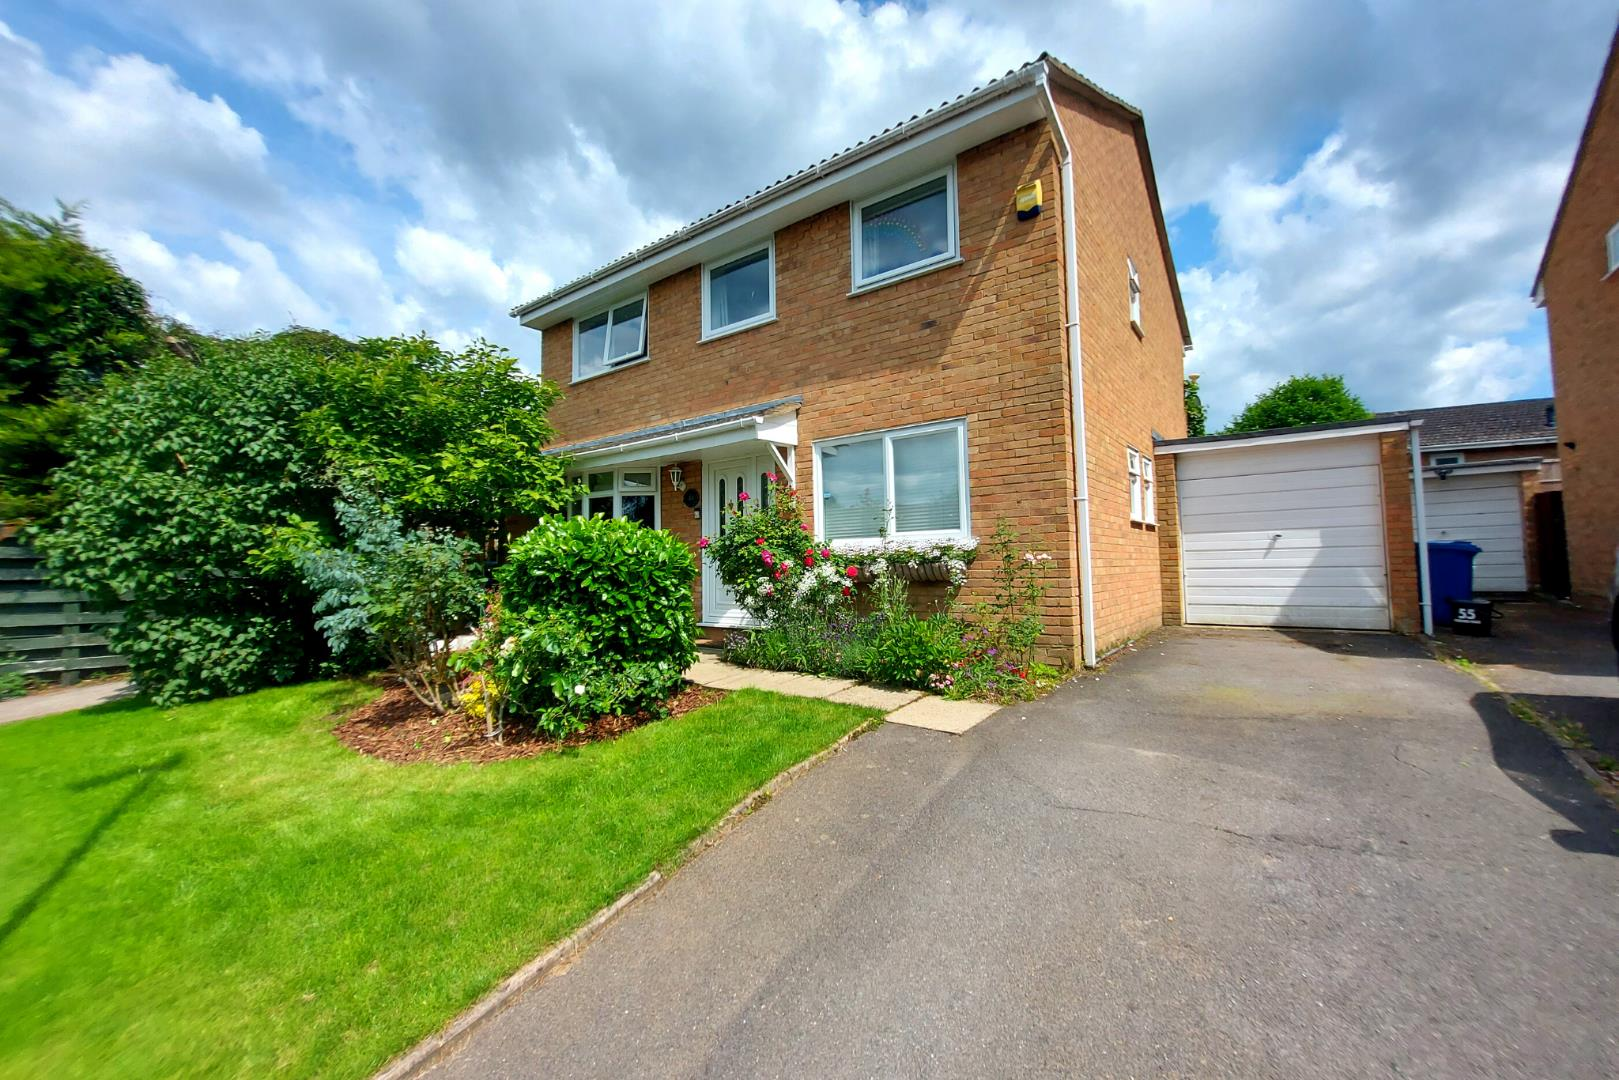 4 bed house for sale in Owlsmoor - Property Image 1